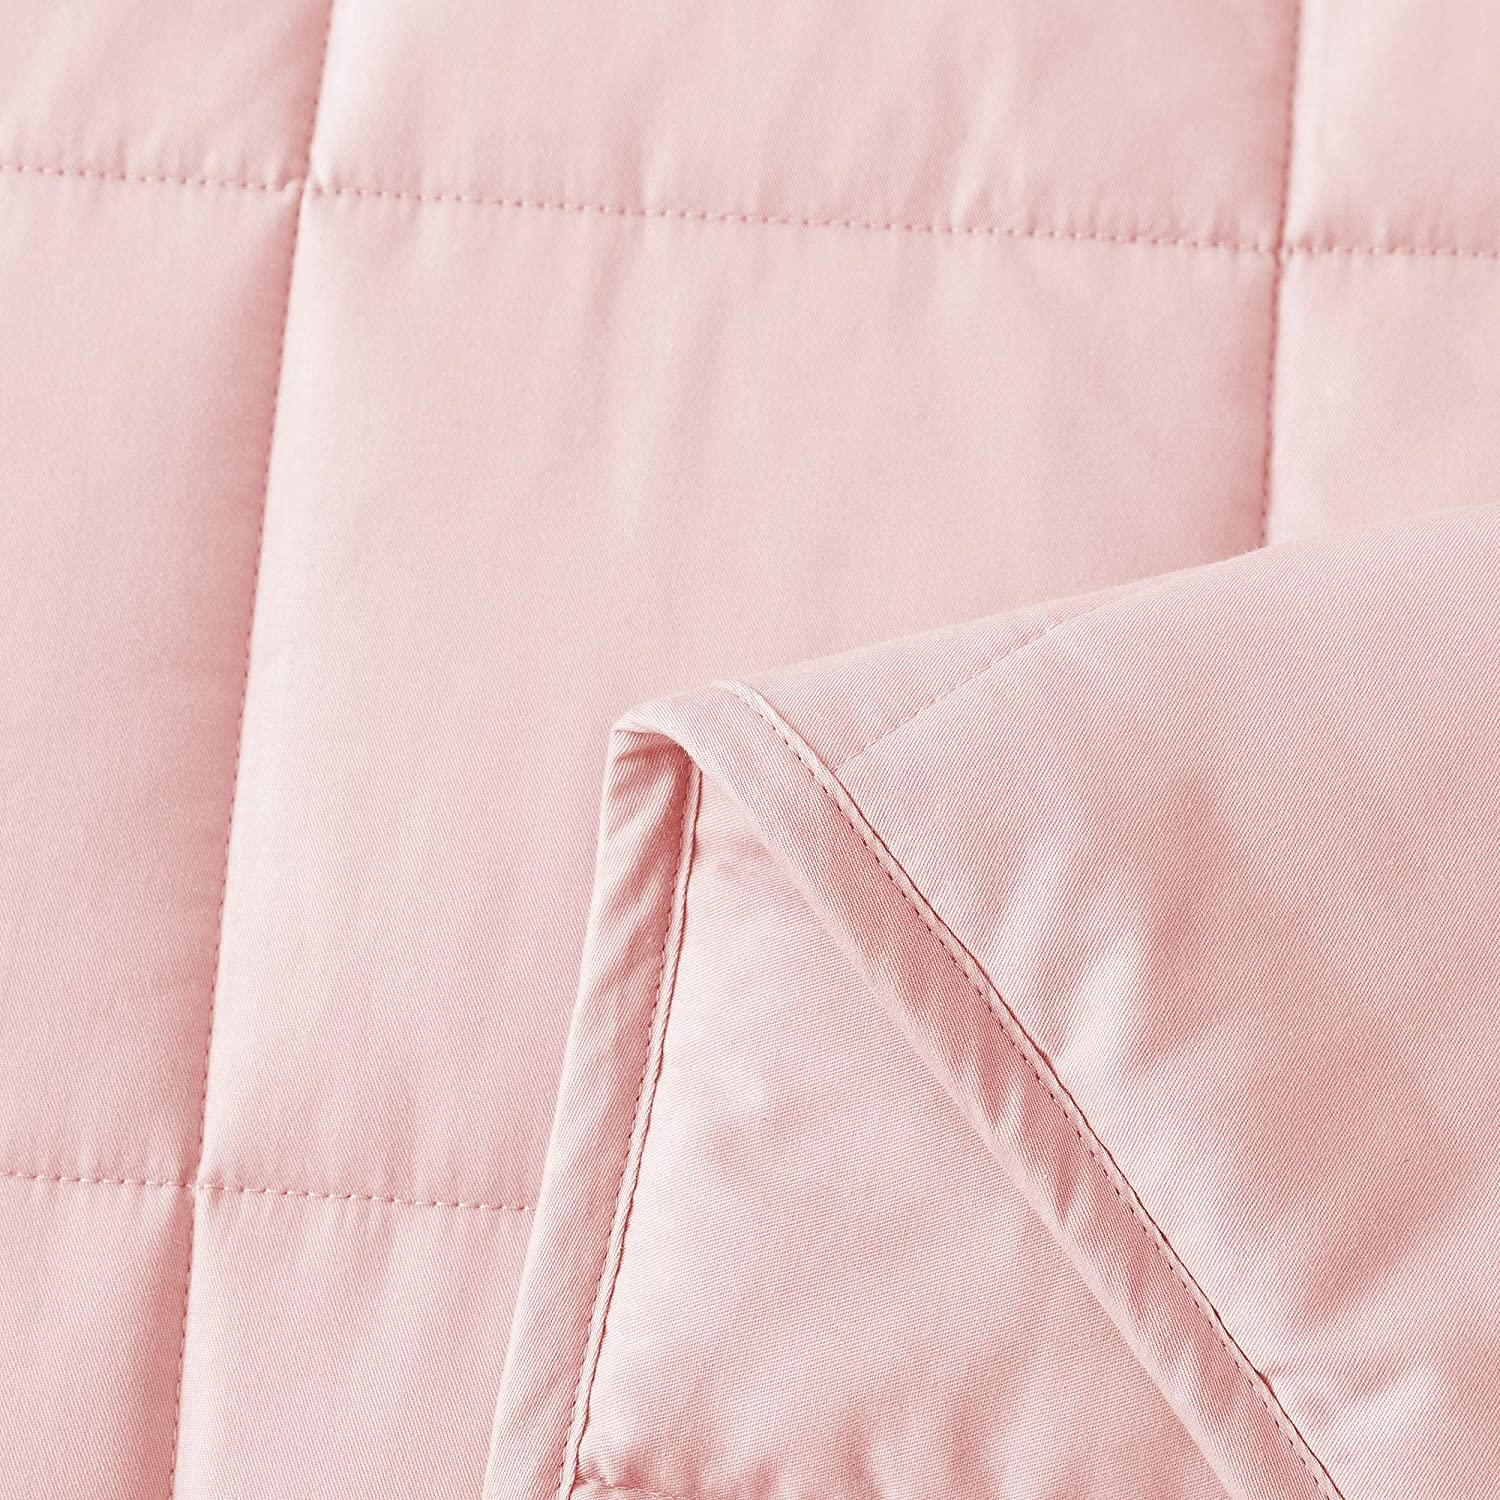 Shell Pink, 41x60 10lbs High Degrees of Breathability Best Adult Heavy Calming Blanket Cosymax Weighted Blanket 3.0,100/% Soft Sensory Cotton,High Density Glass Beads Filling